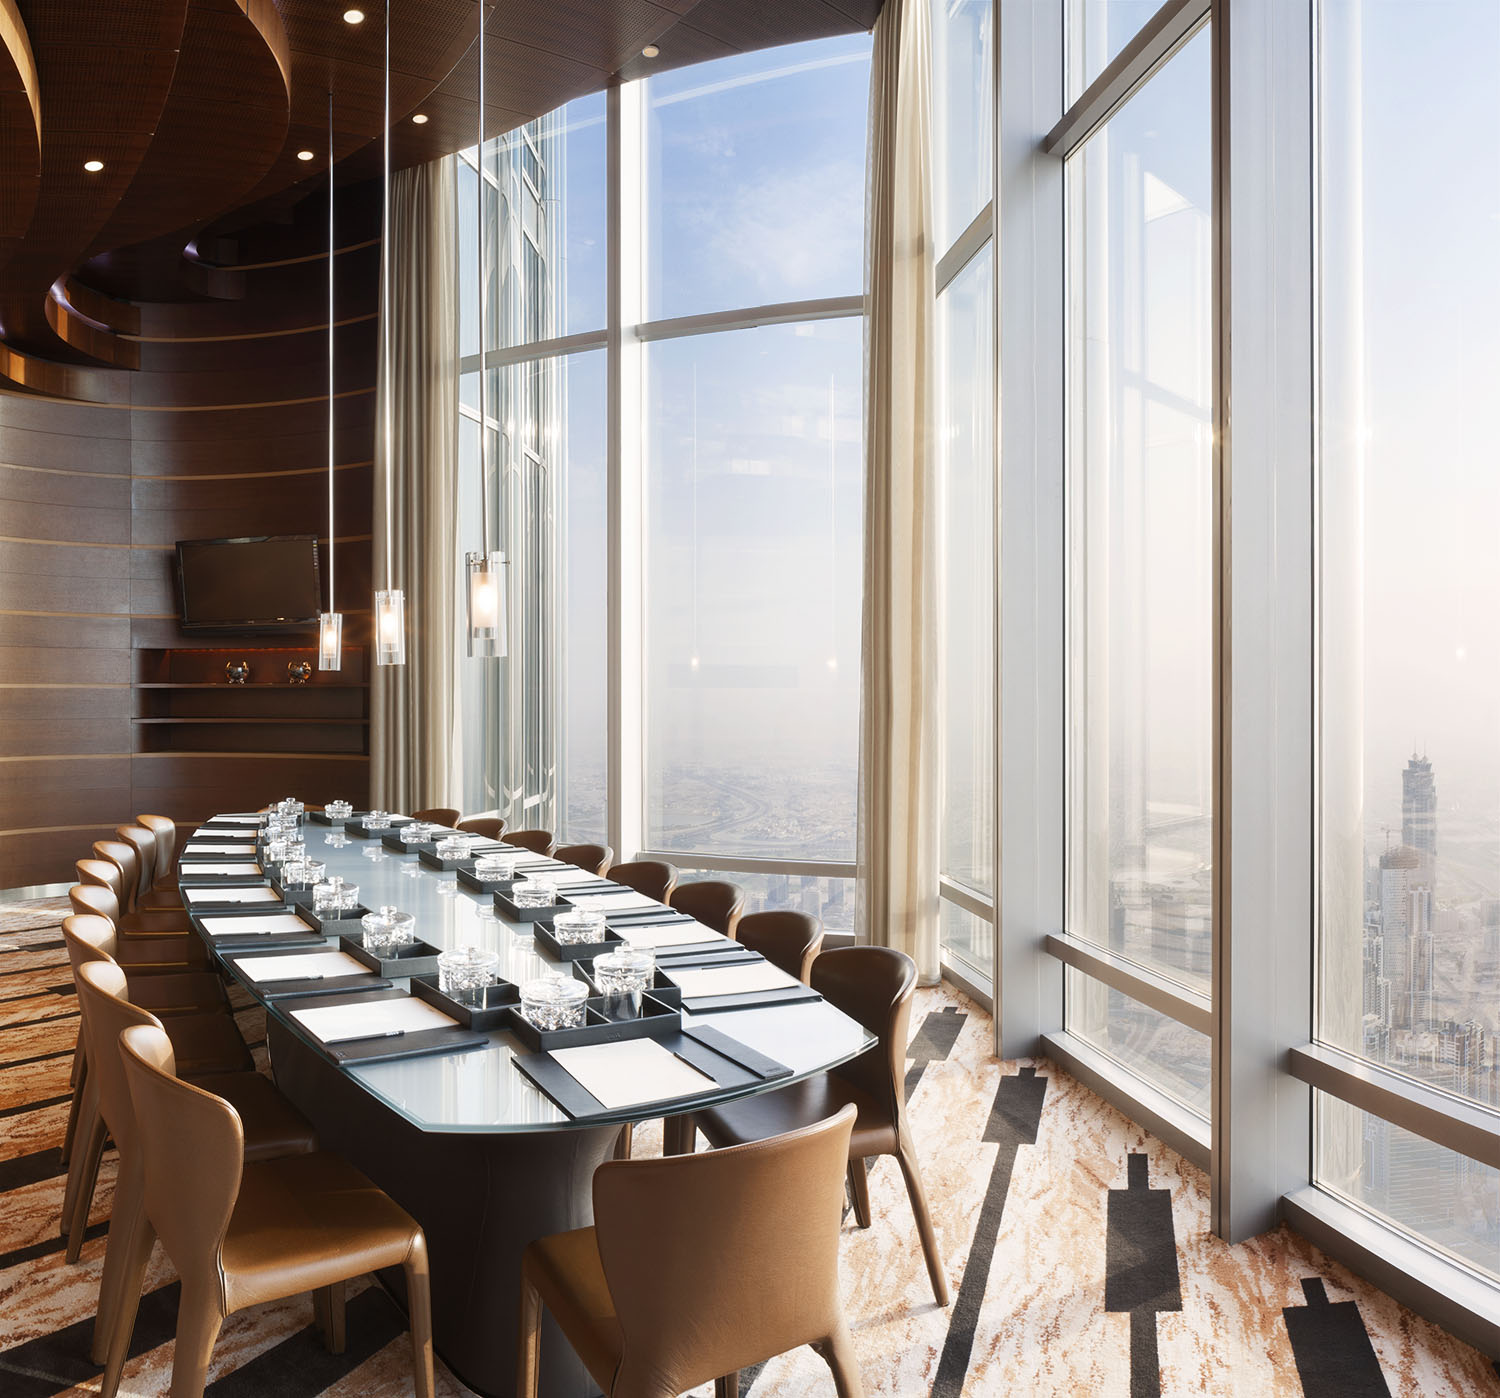 The Armani Hotel meeting room in the Burj Khalifa, Dubai